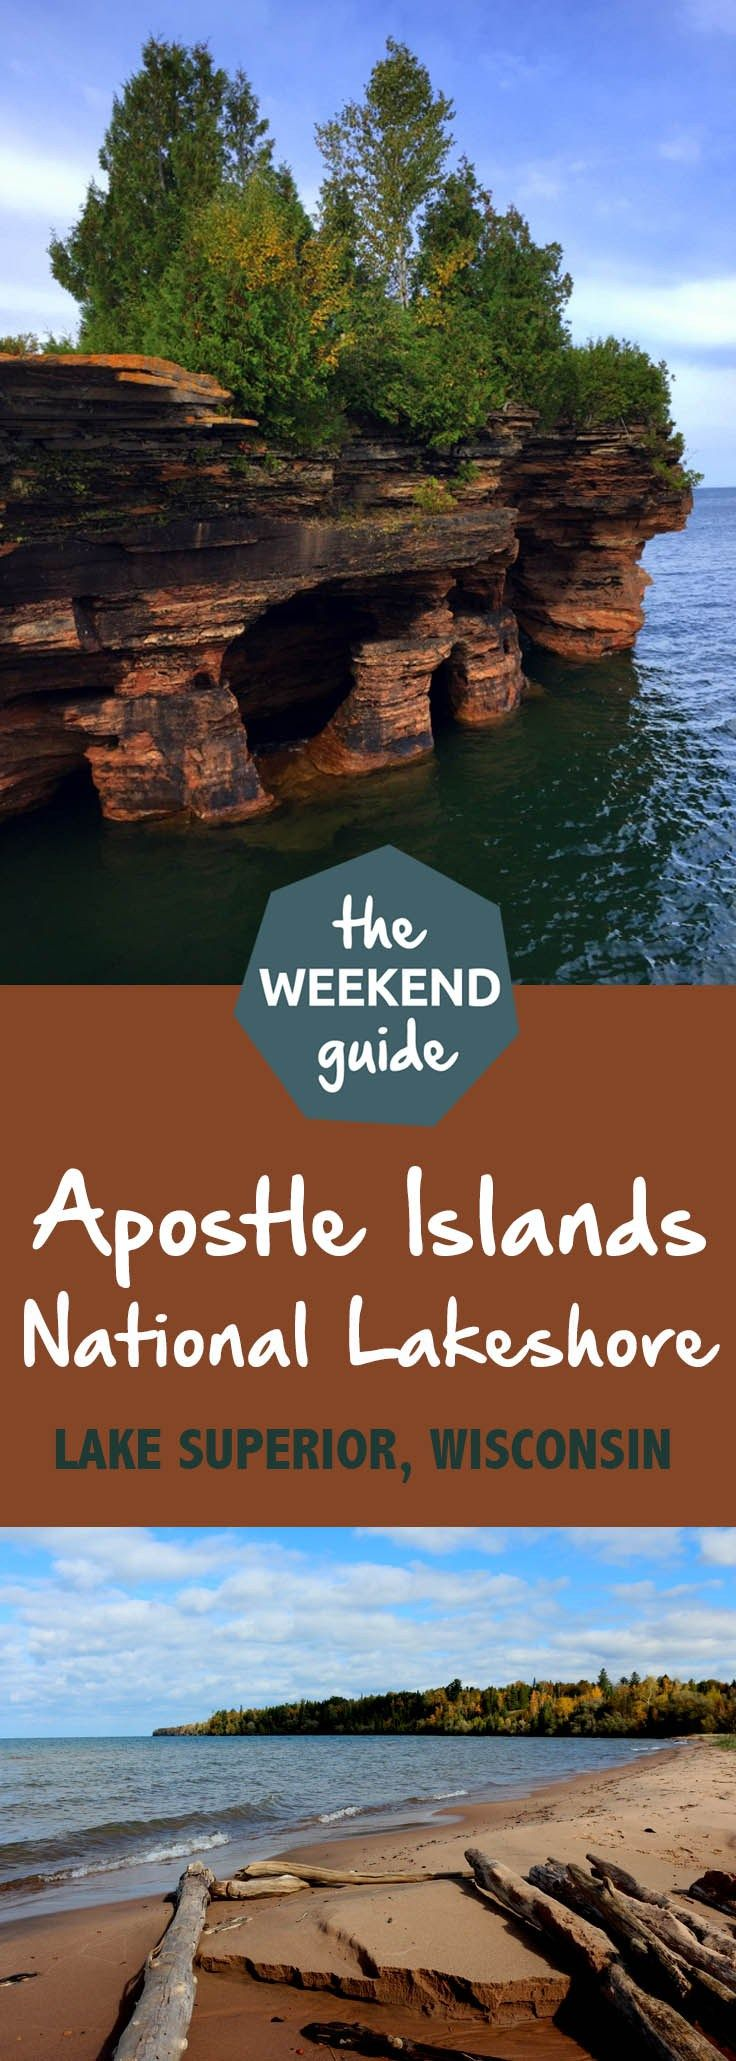 Apostle Islands National Lakeshore encompasses 21 islands as well as shoreline along Lake Superior in northern Wisconsin. The distinctive geology of the area is a result of glacial activity many thousands of years ago leaving beautiful sandstone formations that dazzle the eye. - theweekendguide.com